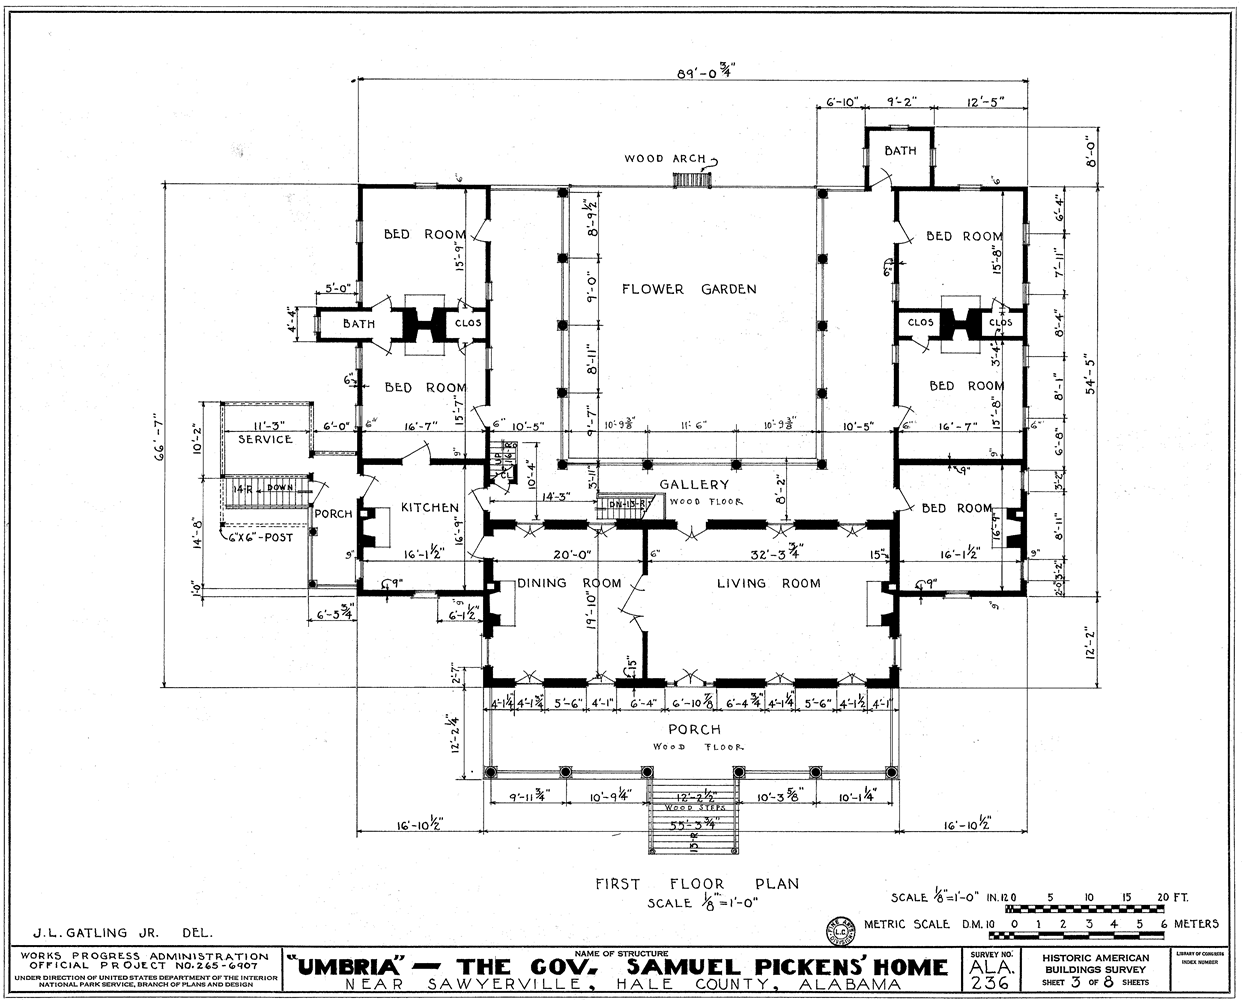 House plans and design architectural house designs floor for Architectural design home plans